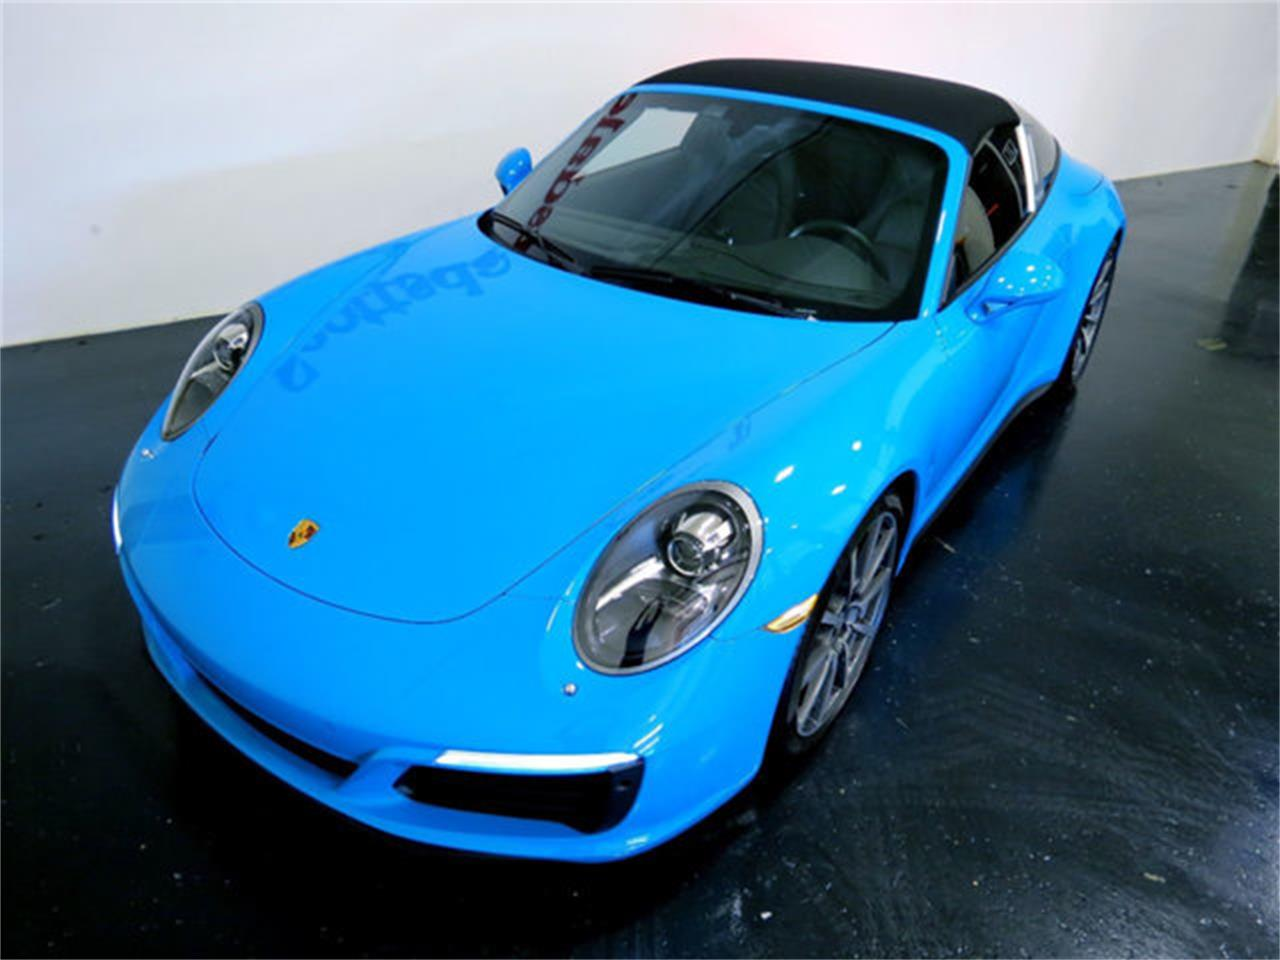 2017 Porsche 911 Targa (CC-1244992) for sale in Scottsdale, Arizona